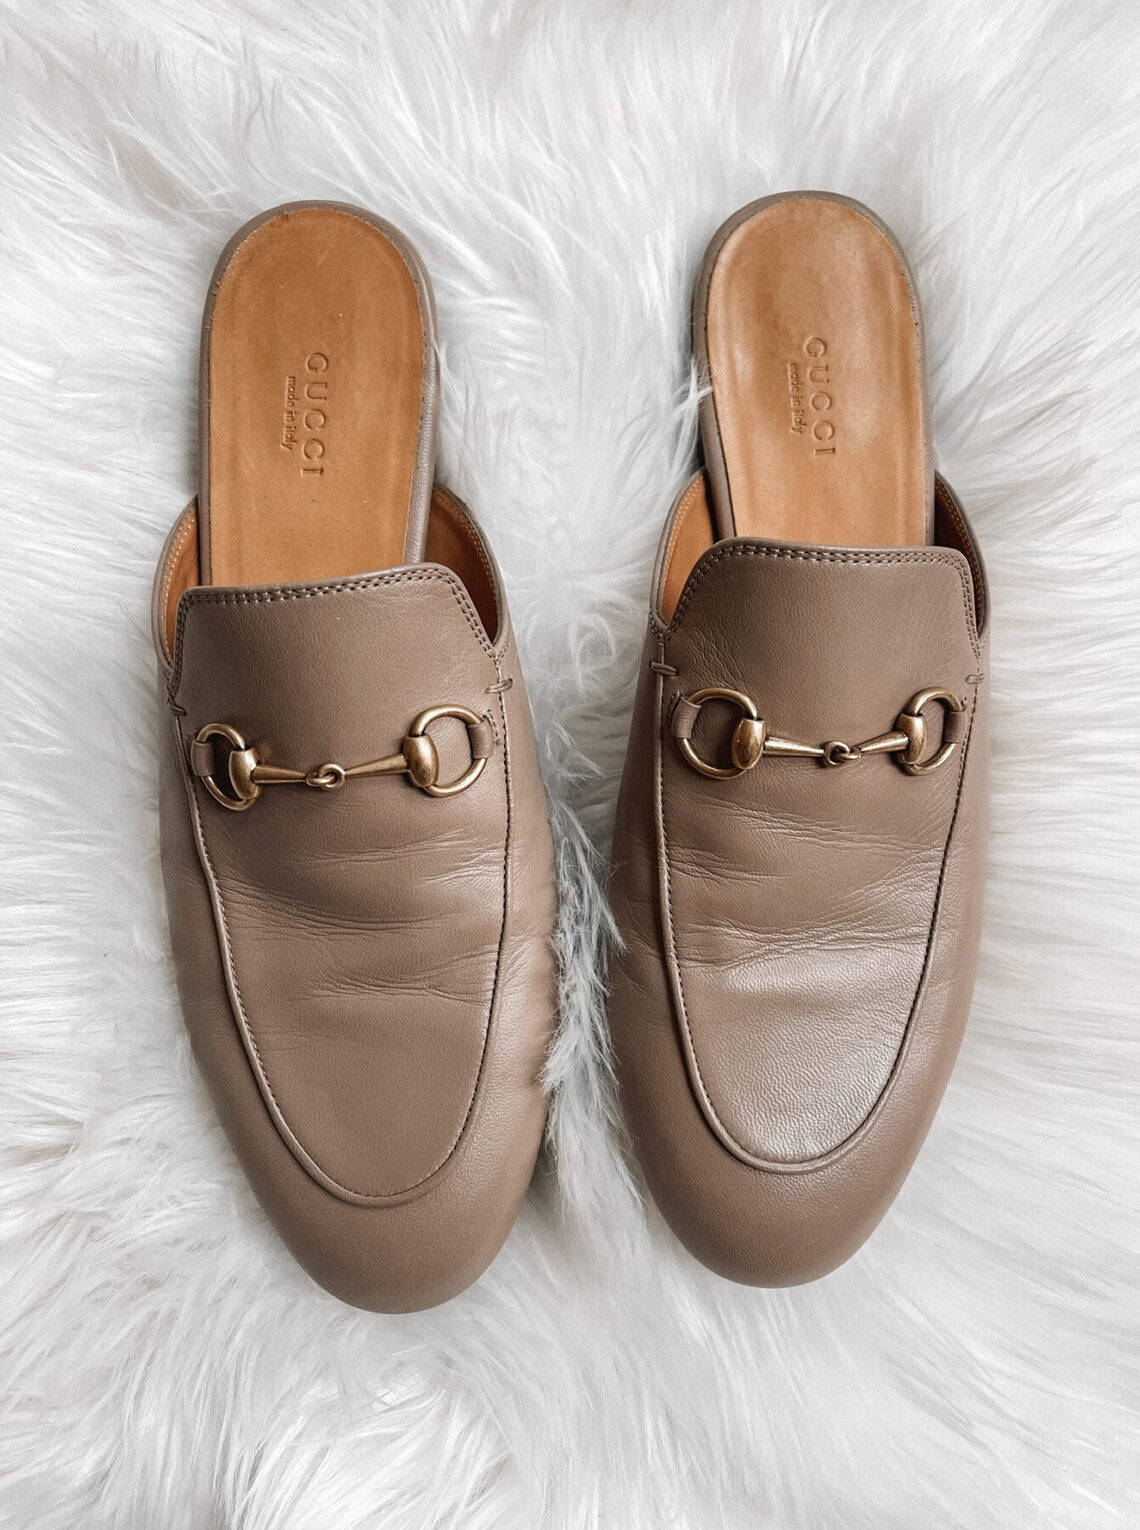 Fashion Jackson Gucci Princeton Mules Mud